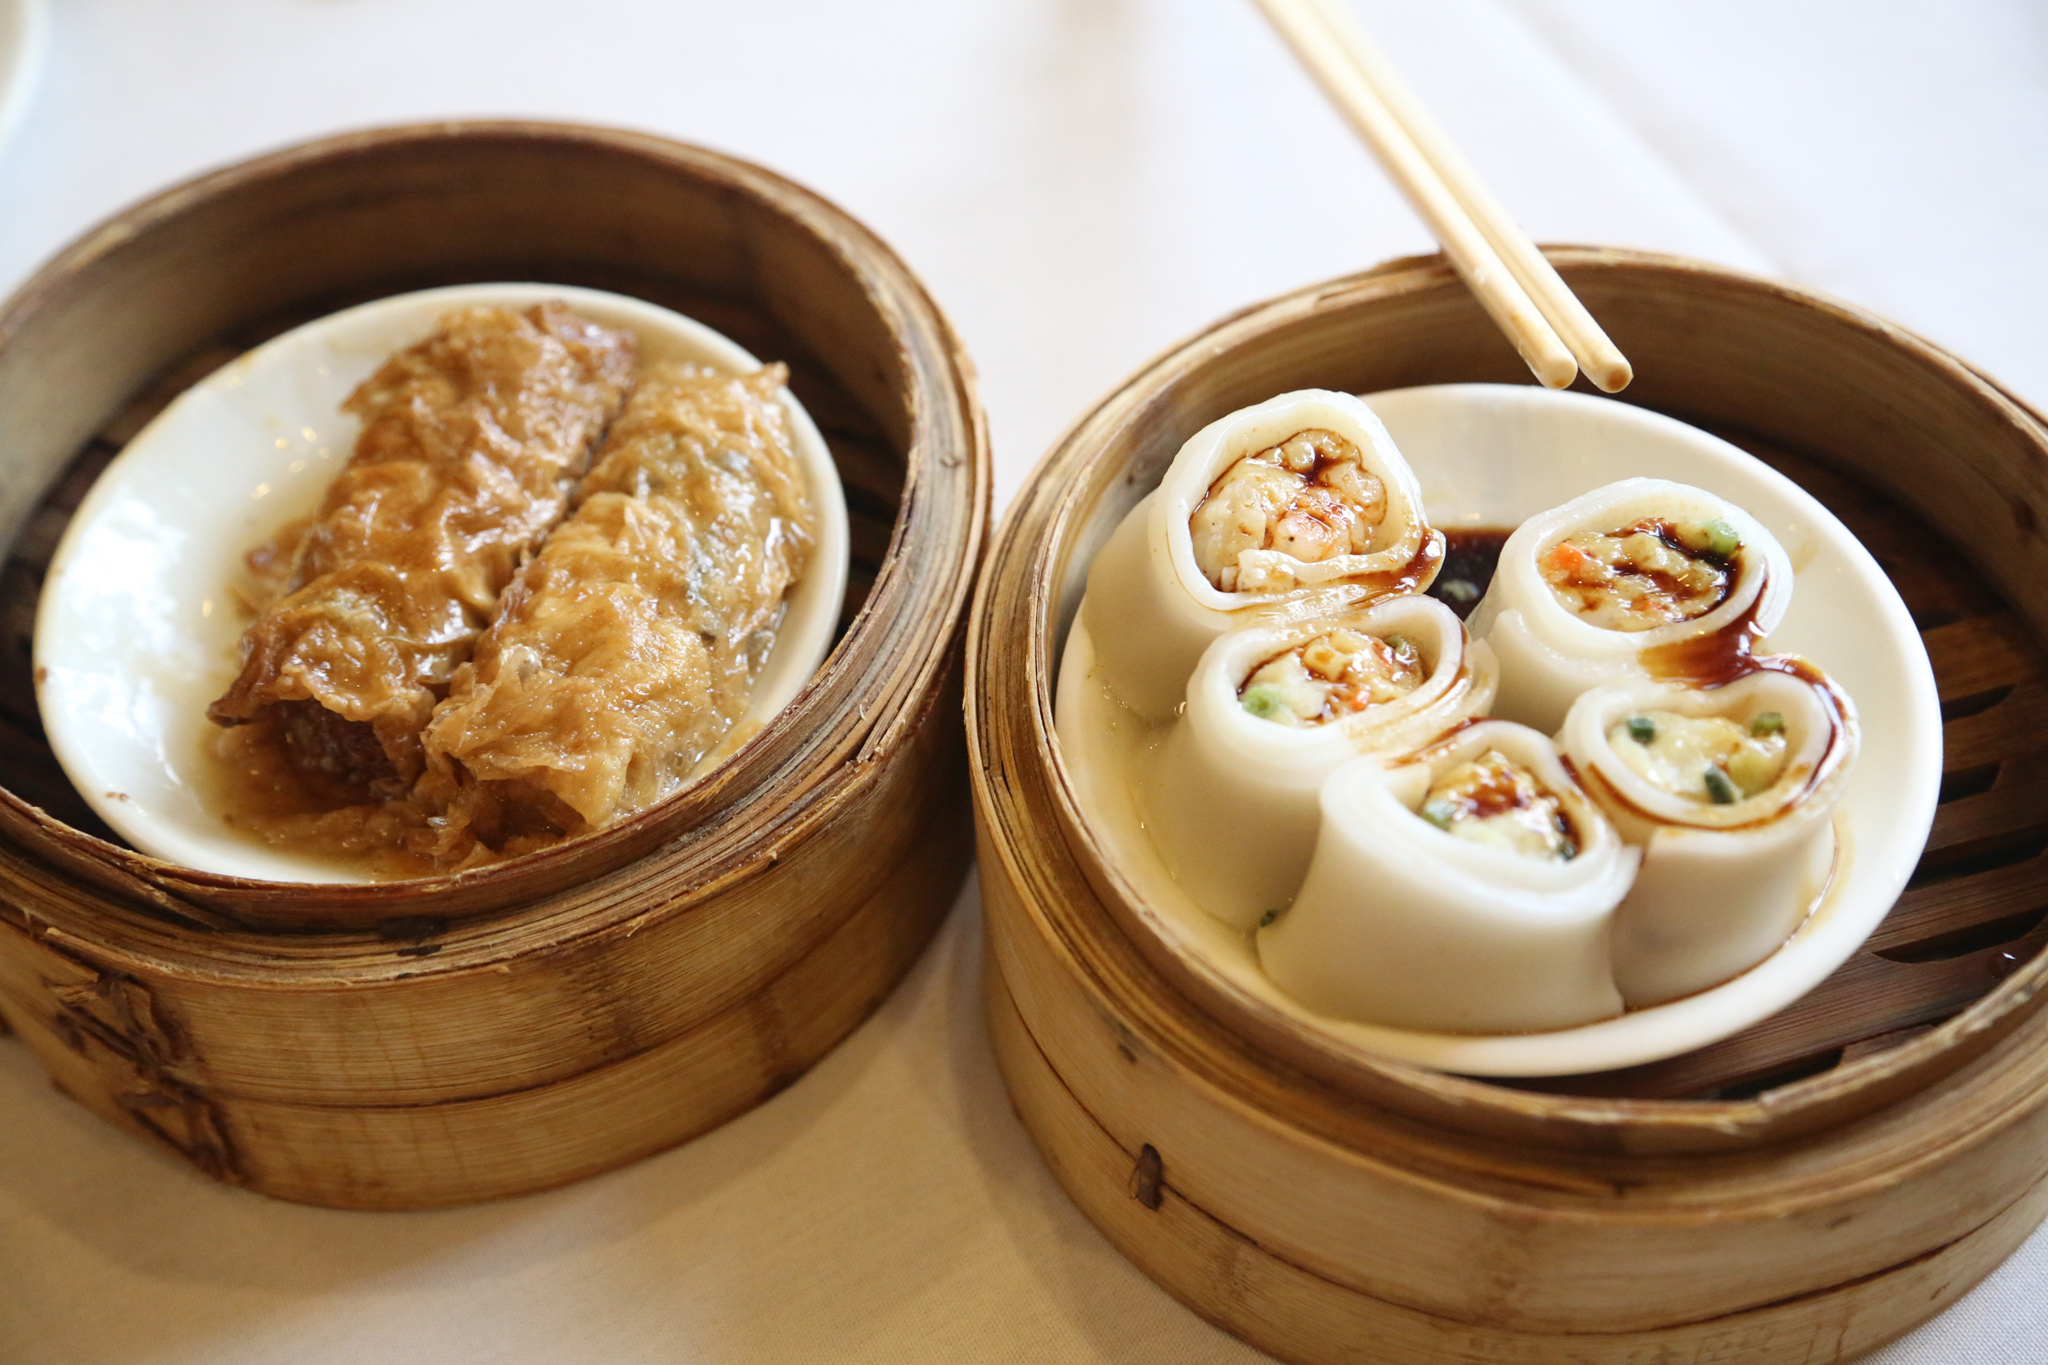 Glutinous flour dumplings and braised bean-curd-skin rolls at East Harbor Seafood Palace